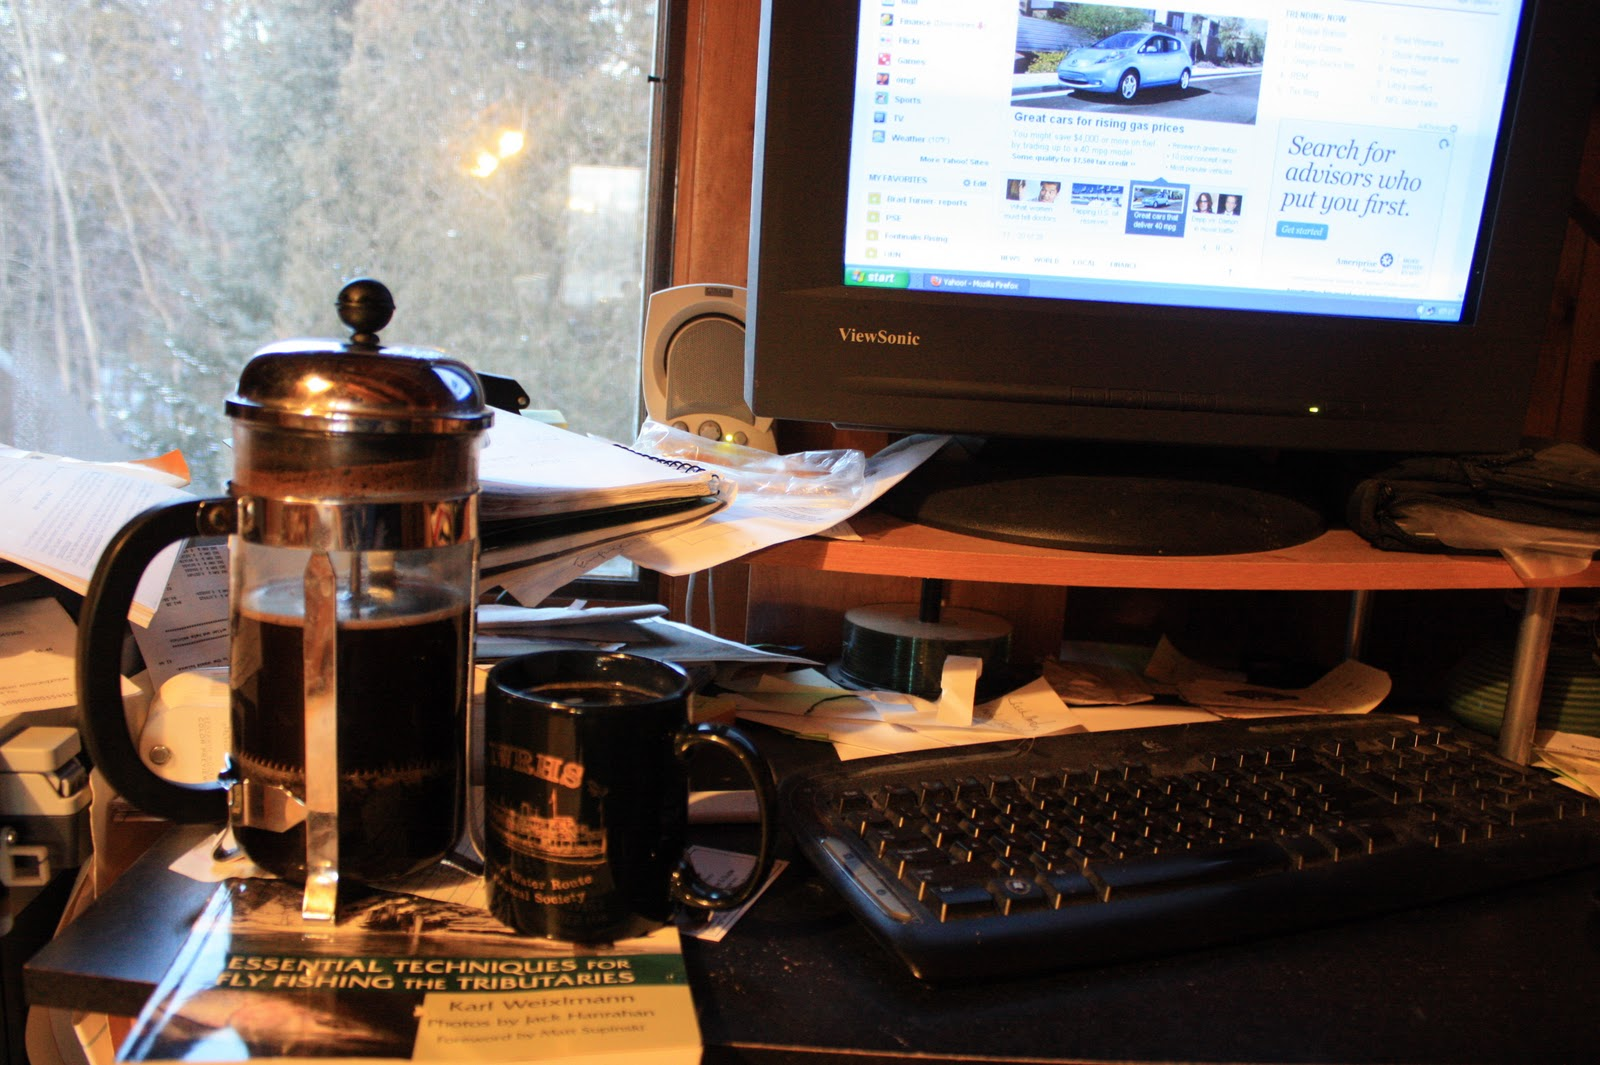 Good Morning Monday Images It's french press- my morning